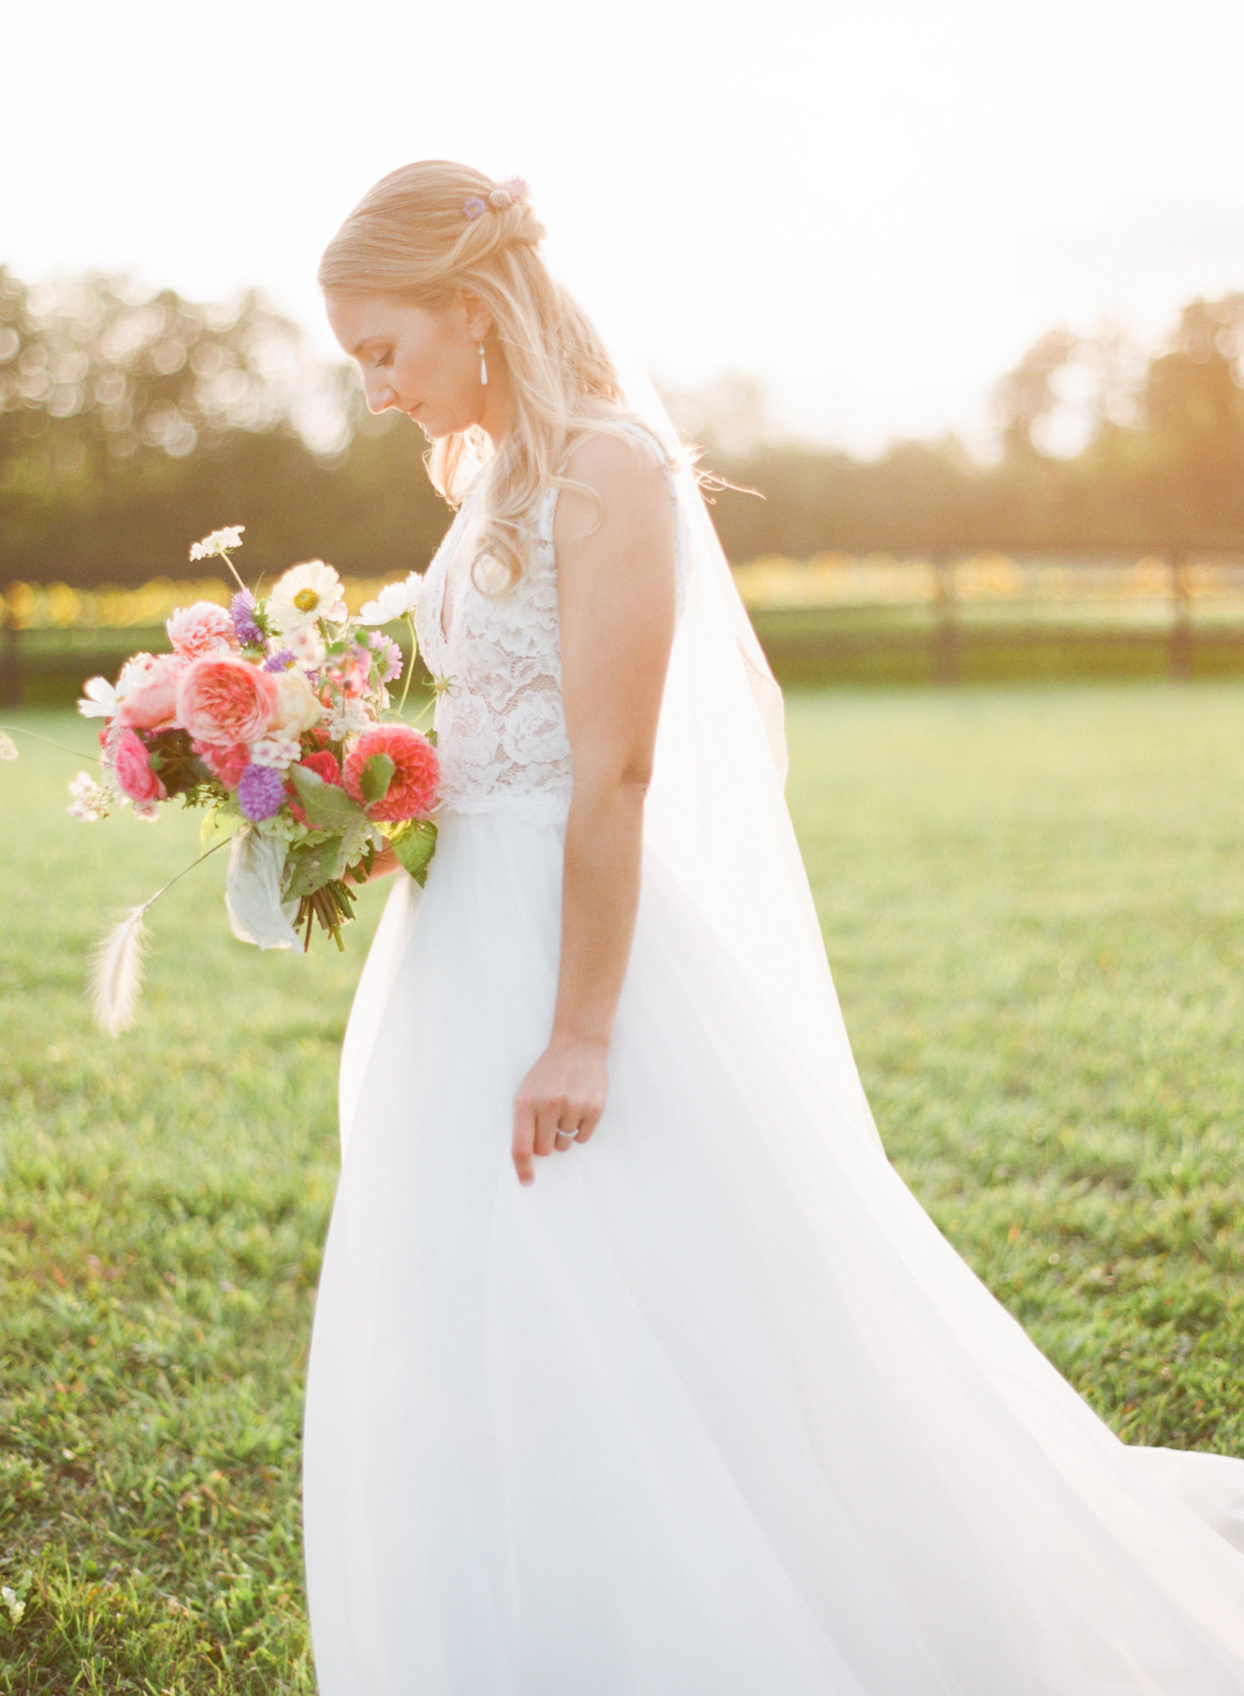 bride in sunny field holding colorful wedding bouquet